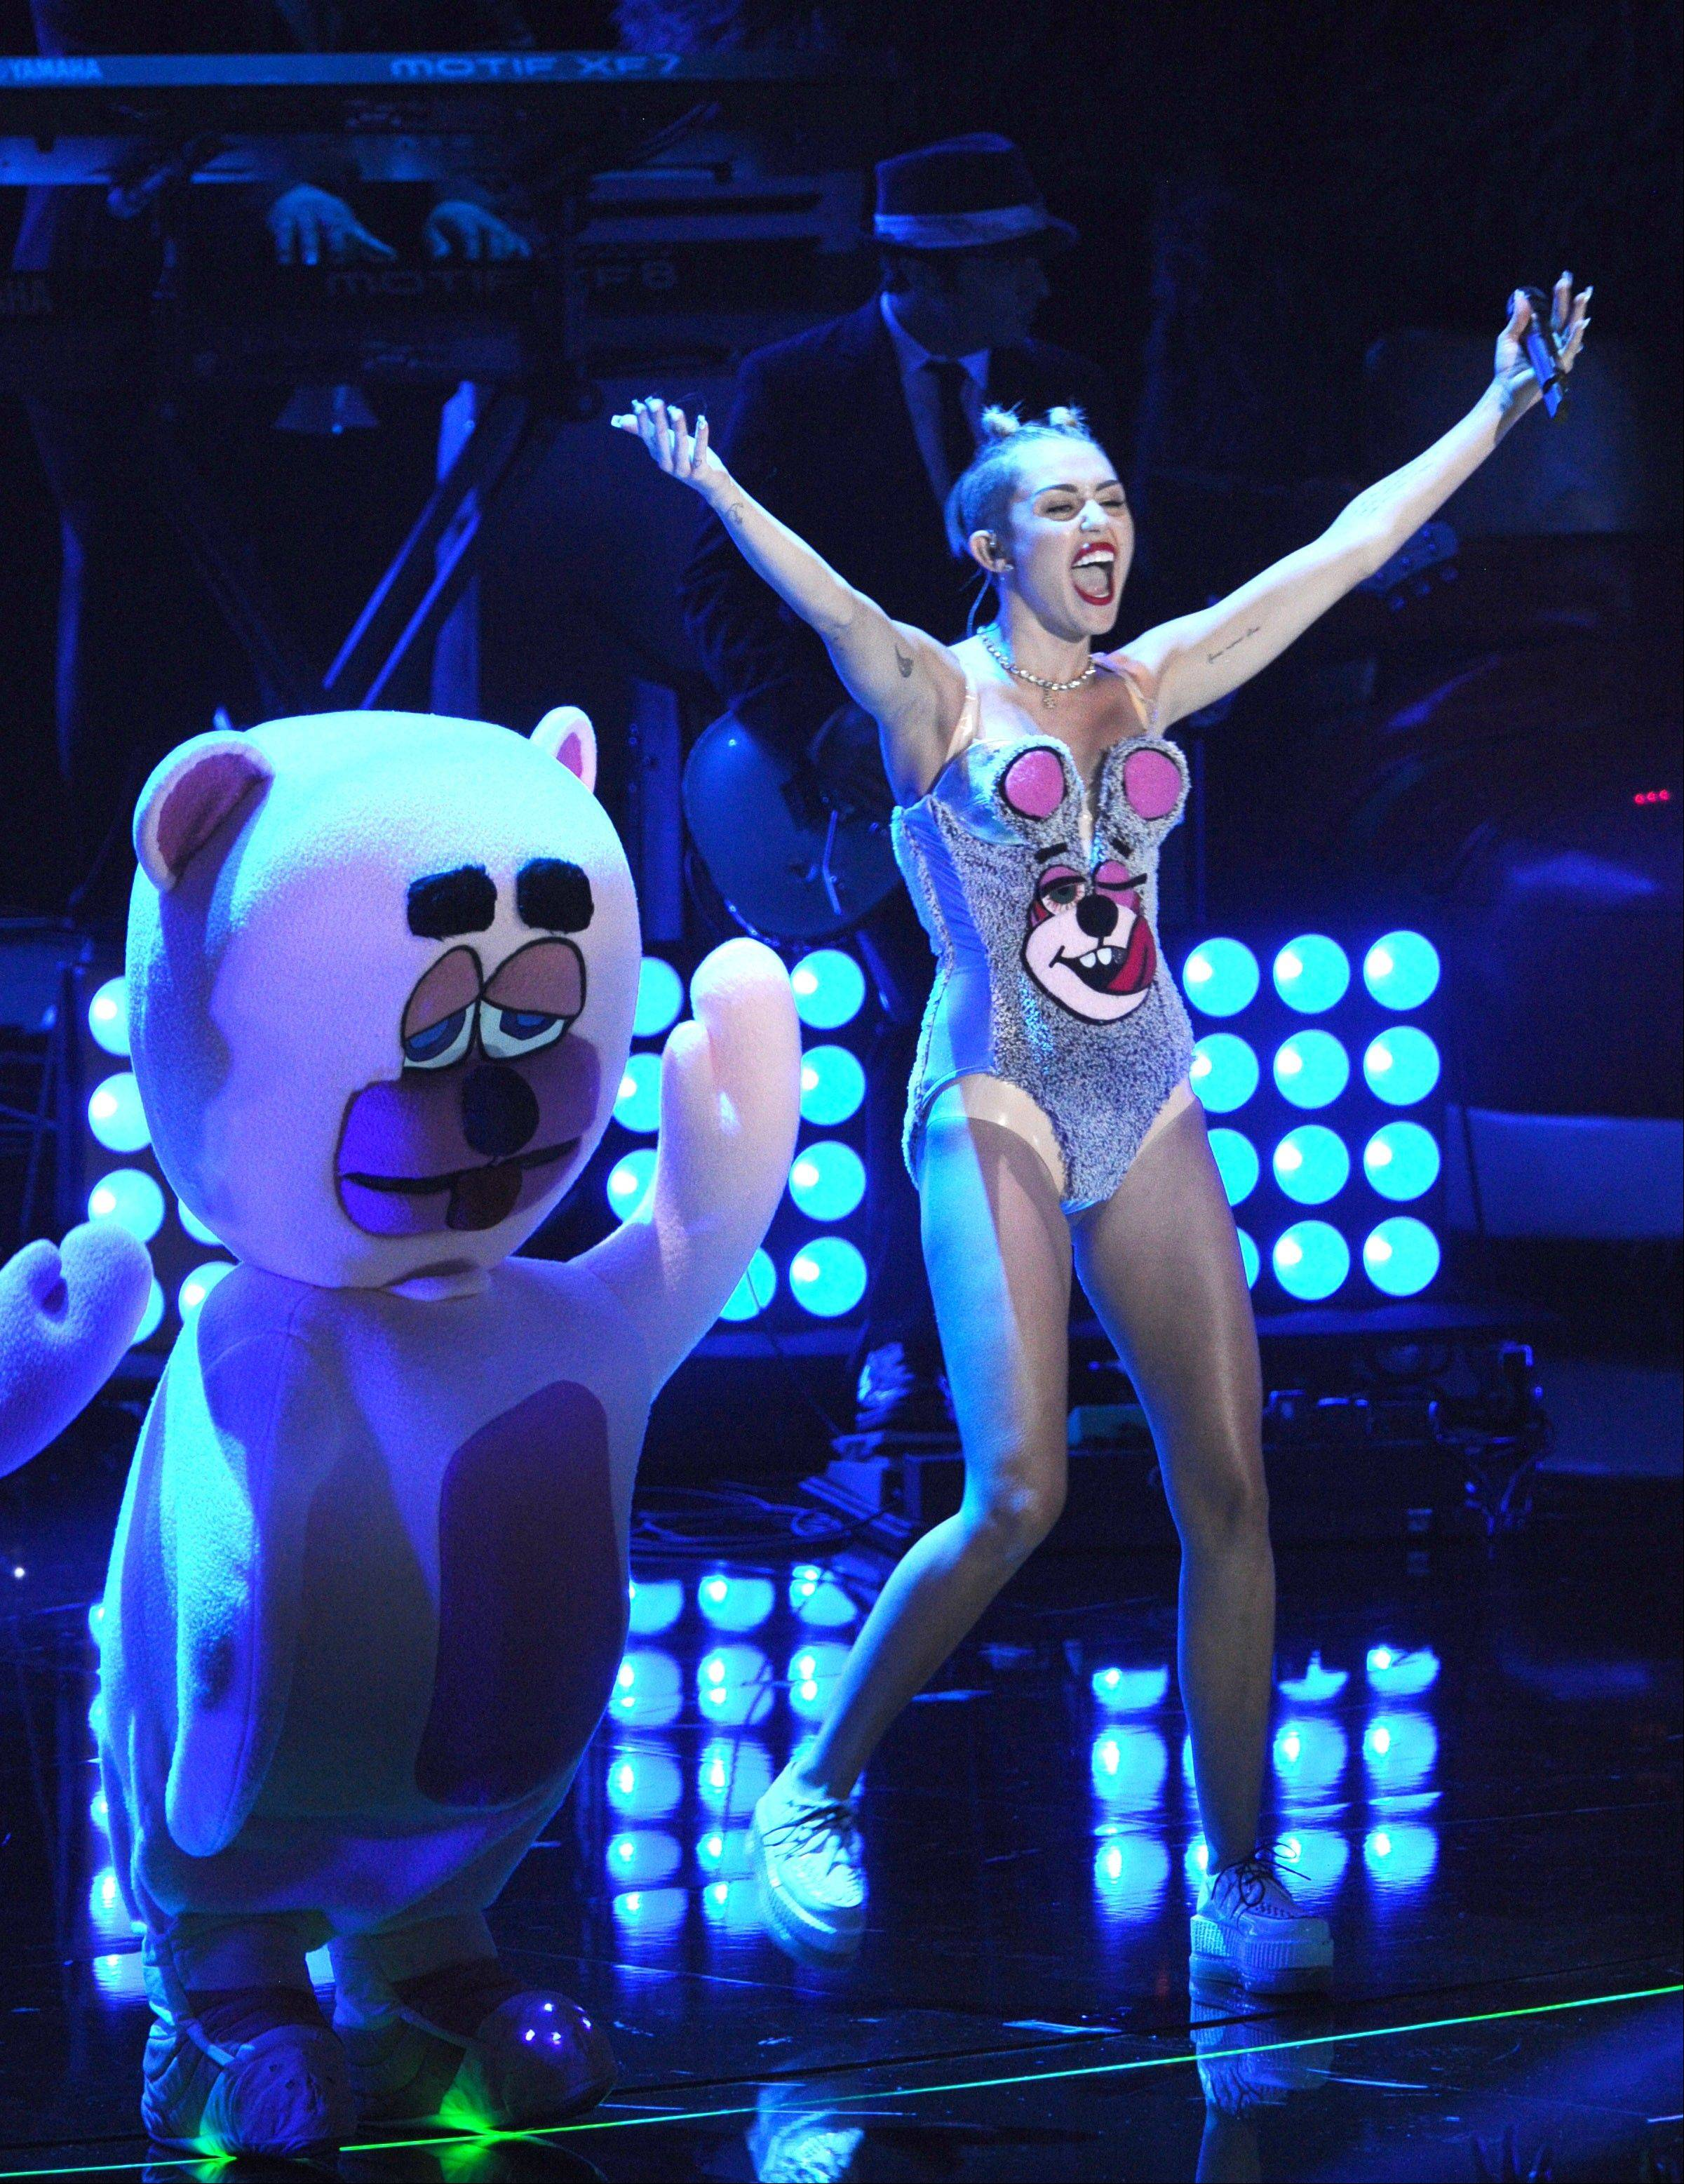 Miley Cyrus performs at the MTV Video Music Awards on Sunday, Aug. 25, 2013, at the Barclays Center in the Brooklyn borough of New York.